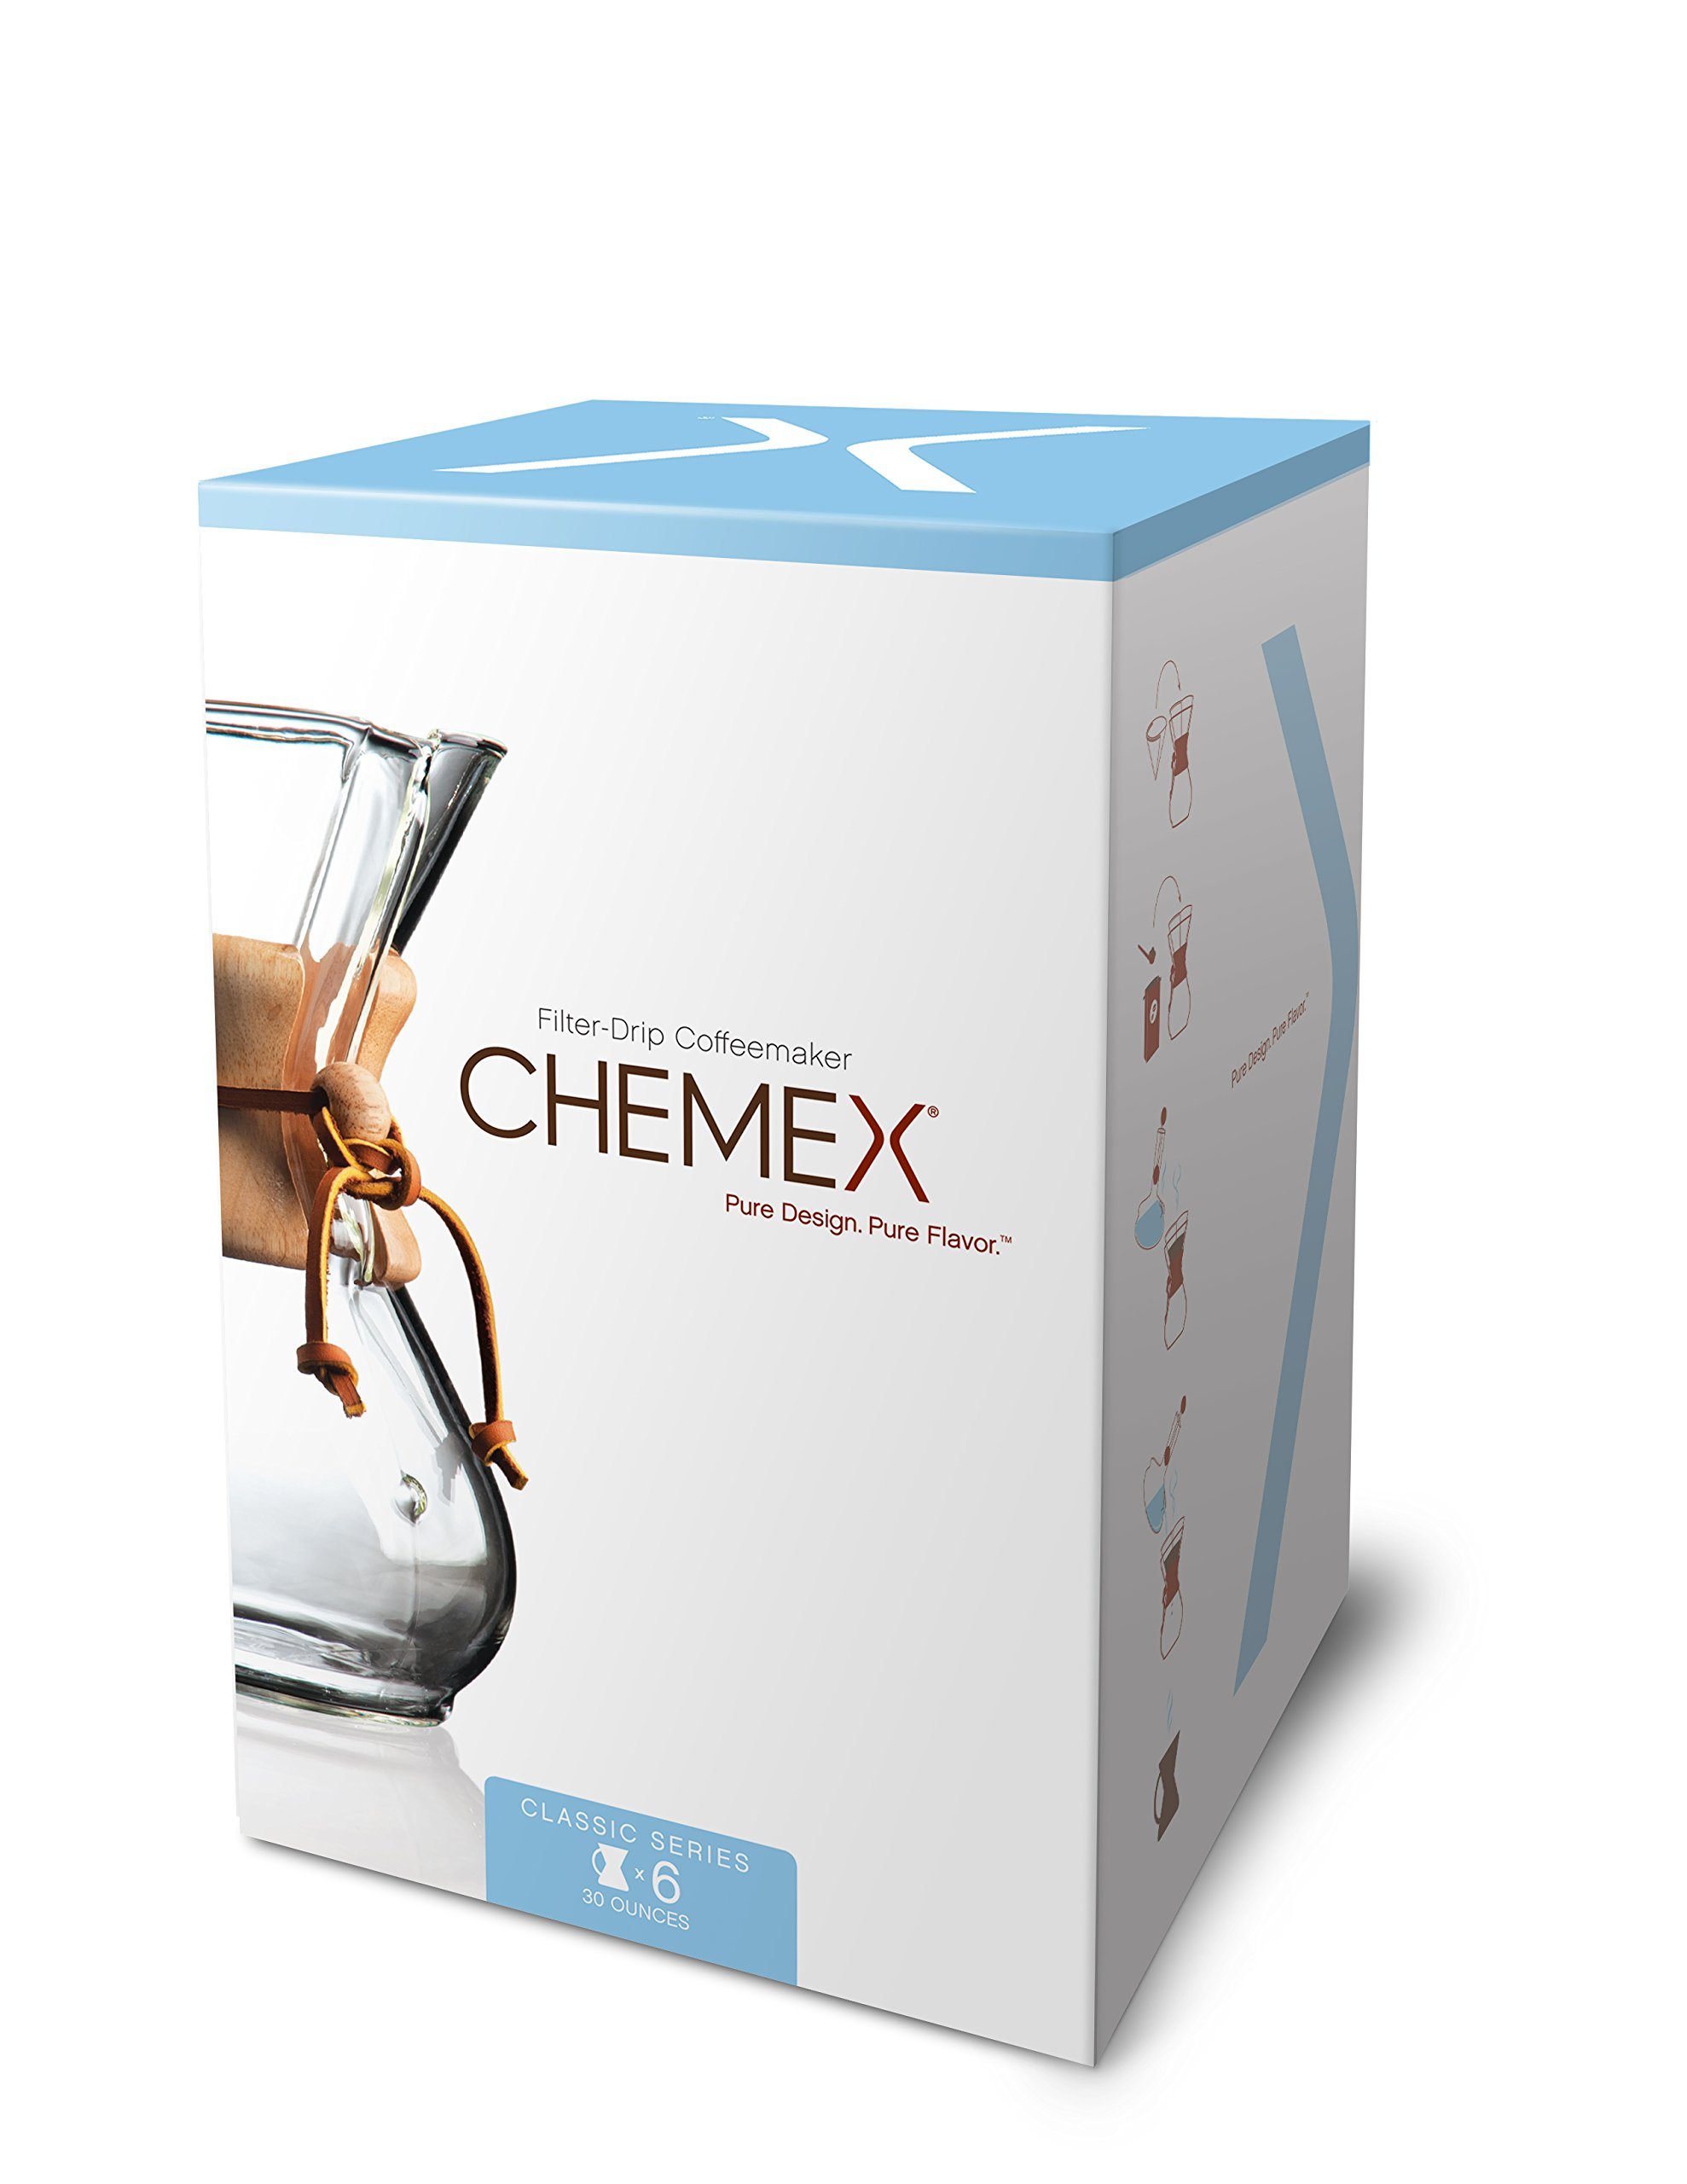 Chemex Classic Series, Pour-over Glass Coffeemaker, 6-Cup - Exclusive Packaging by Chemex